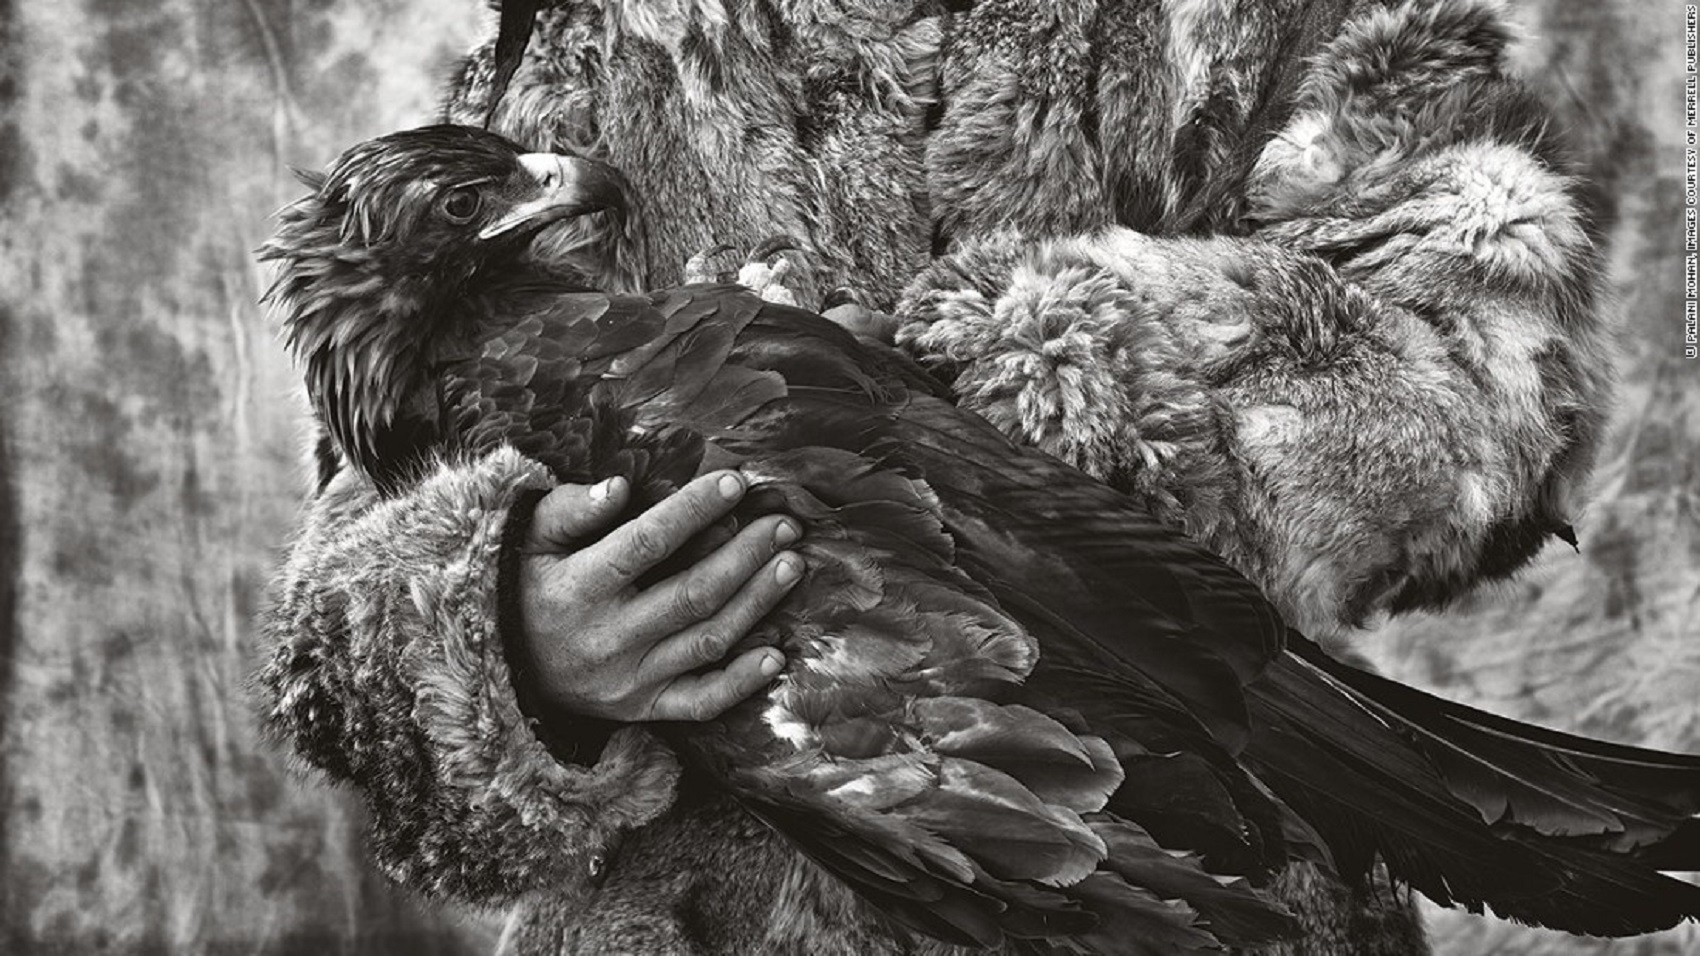 The Last Mongolian Eagle Hunters at spillwords.com